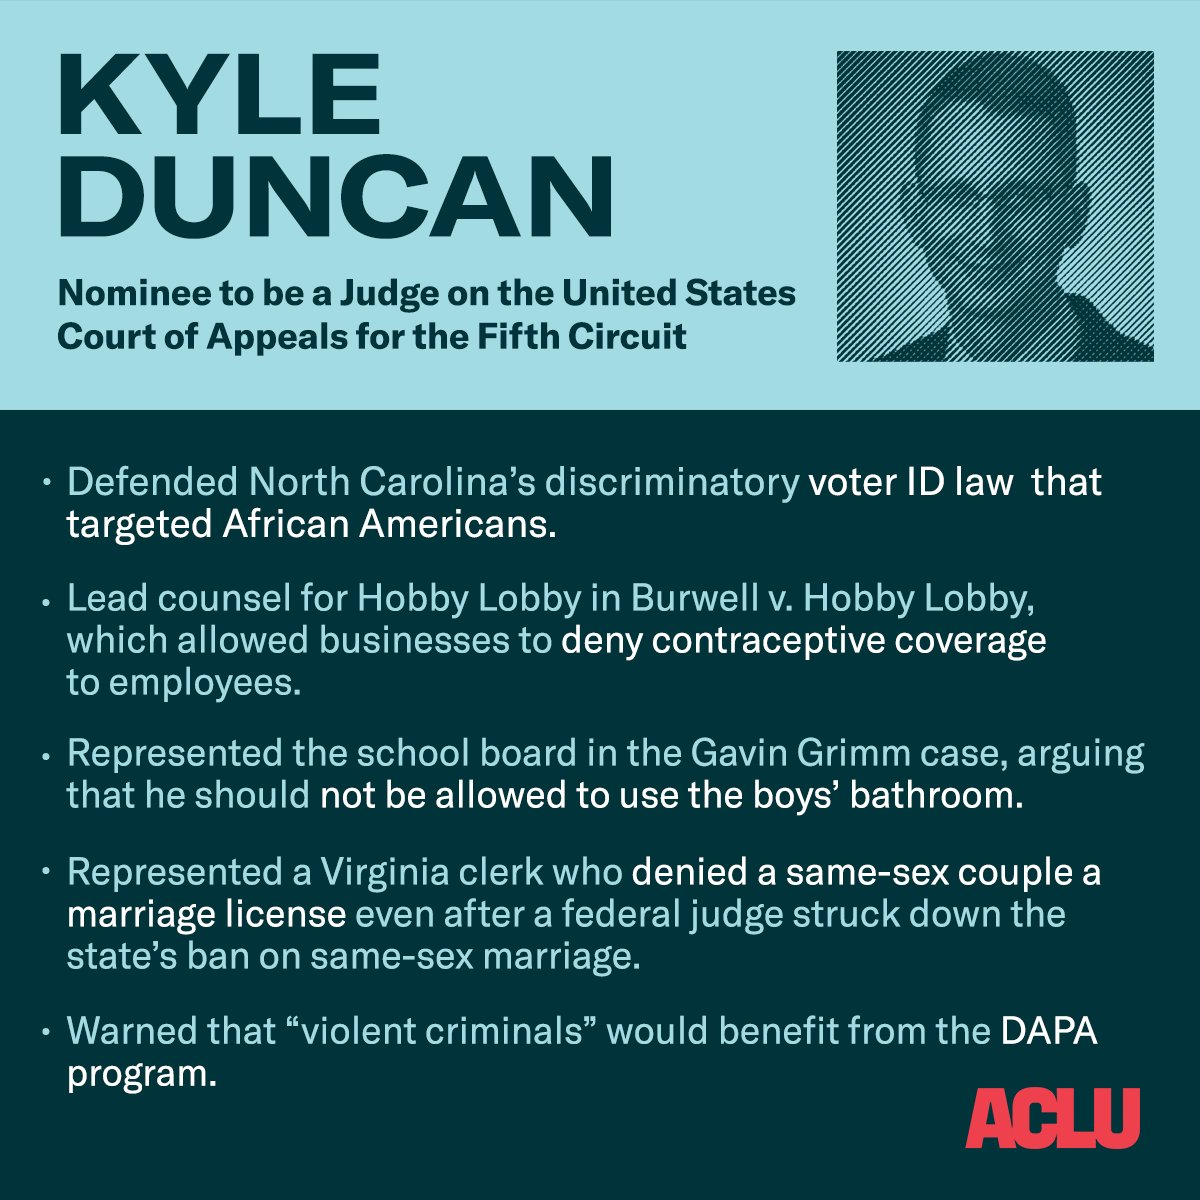 ACLU's photo on Kyle Duncan